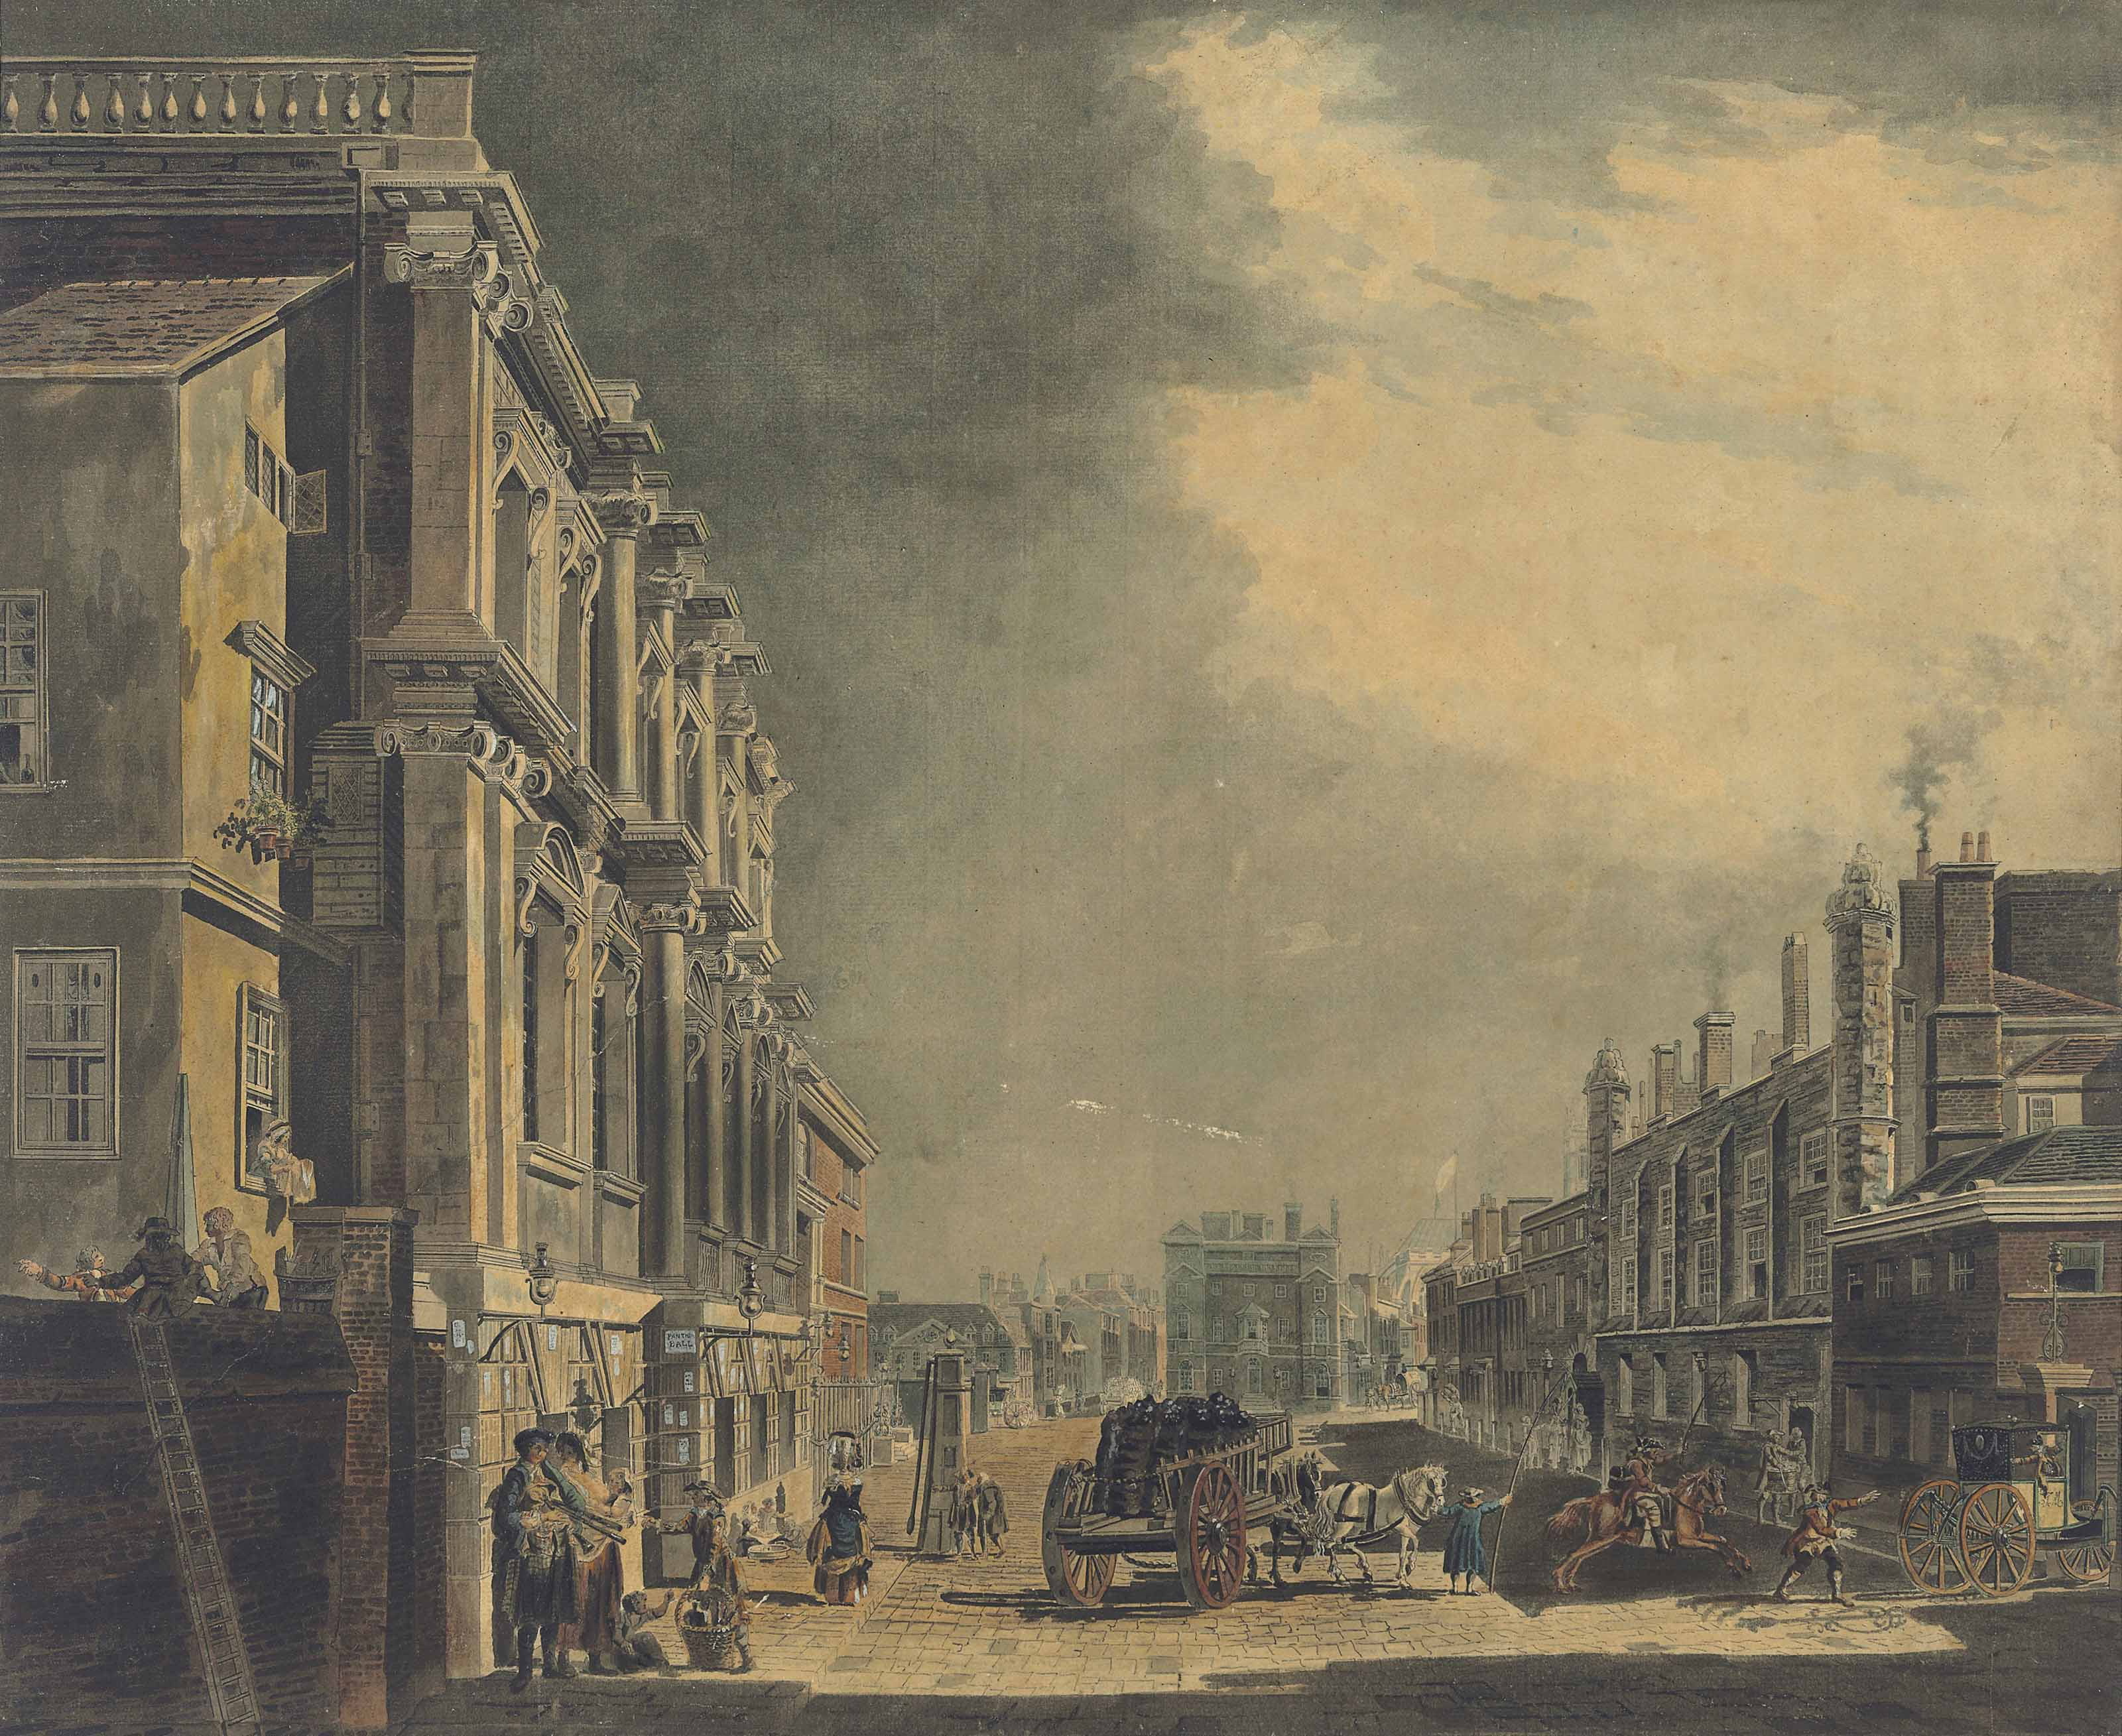 View of Whitehall, looking south towards Westminster Abbey